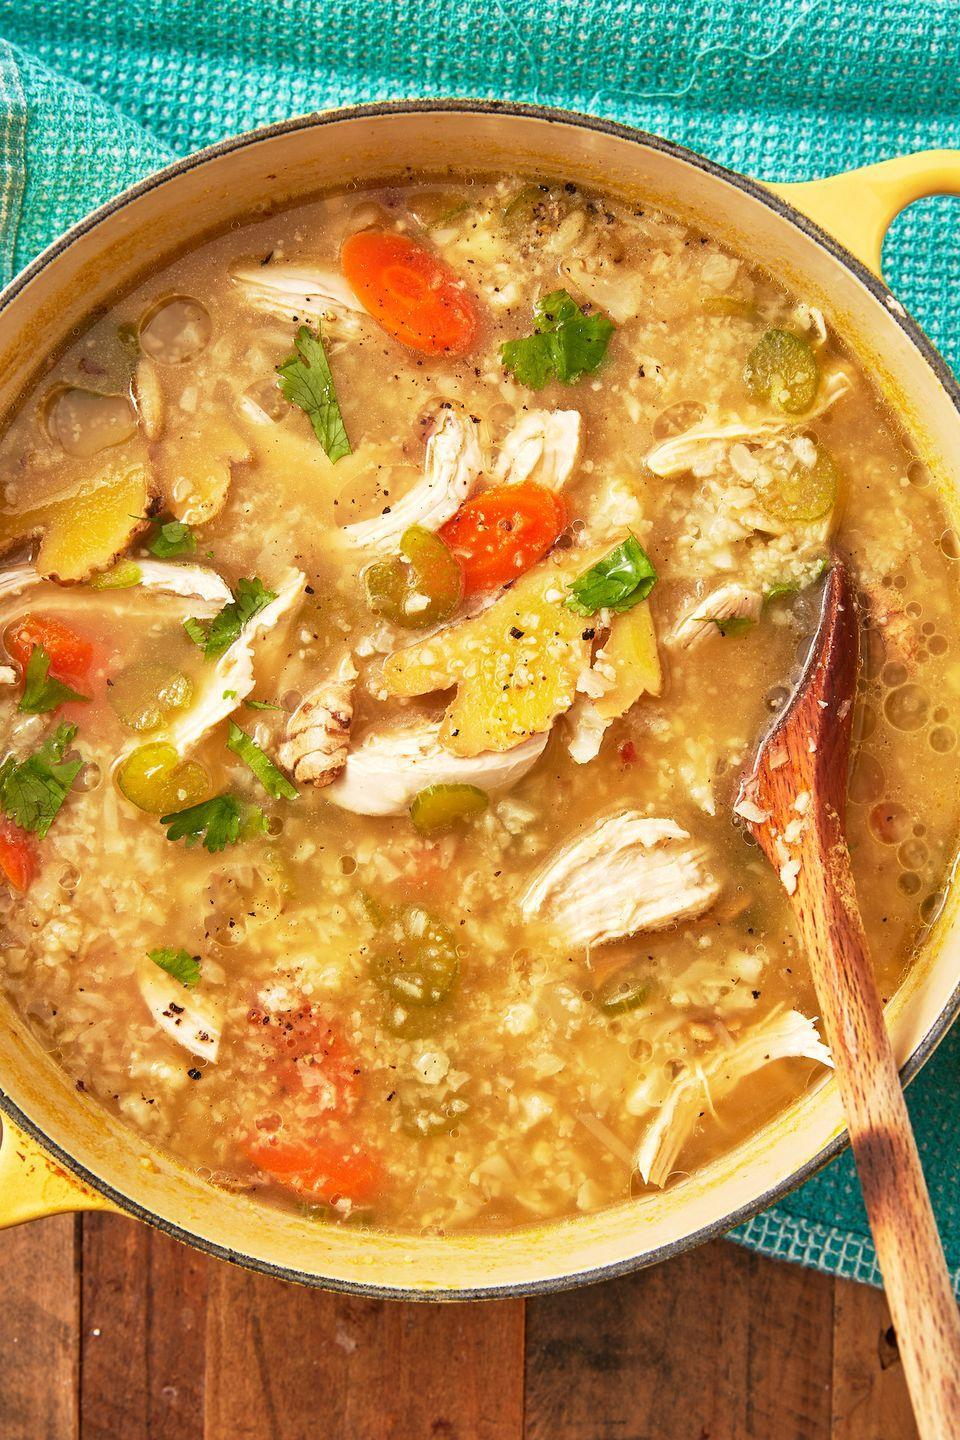 "<p>Cauliflower bulks up this soup in place of the noodles and it's still one of the most comforting soups. </p><p>Get the recipe from <a href=""https://www.delish.com/cooking/nutrition/a30326477/keto-chicken-soup-recipe/"" rel=""nofollow noopener"" target=""_blank"" data-ylk=""slk:Delish"" class=""link rapid-noclick-resp"">Delish</a>. </p>"